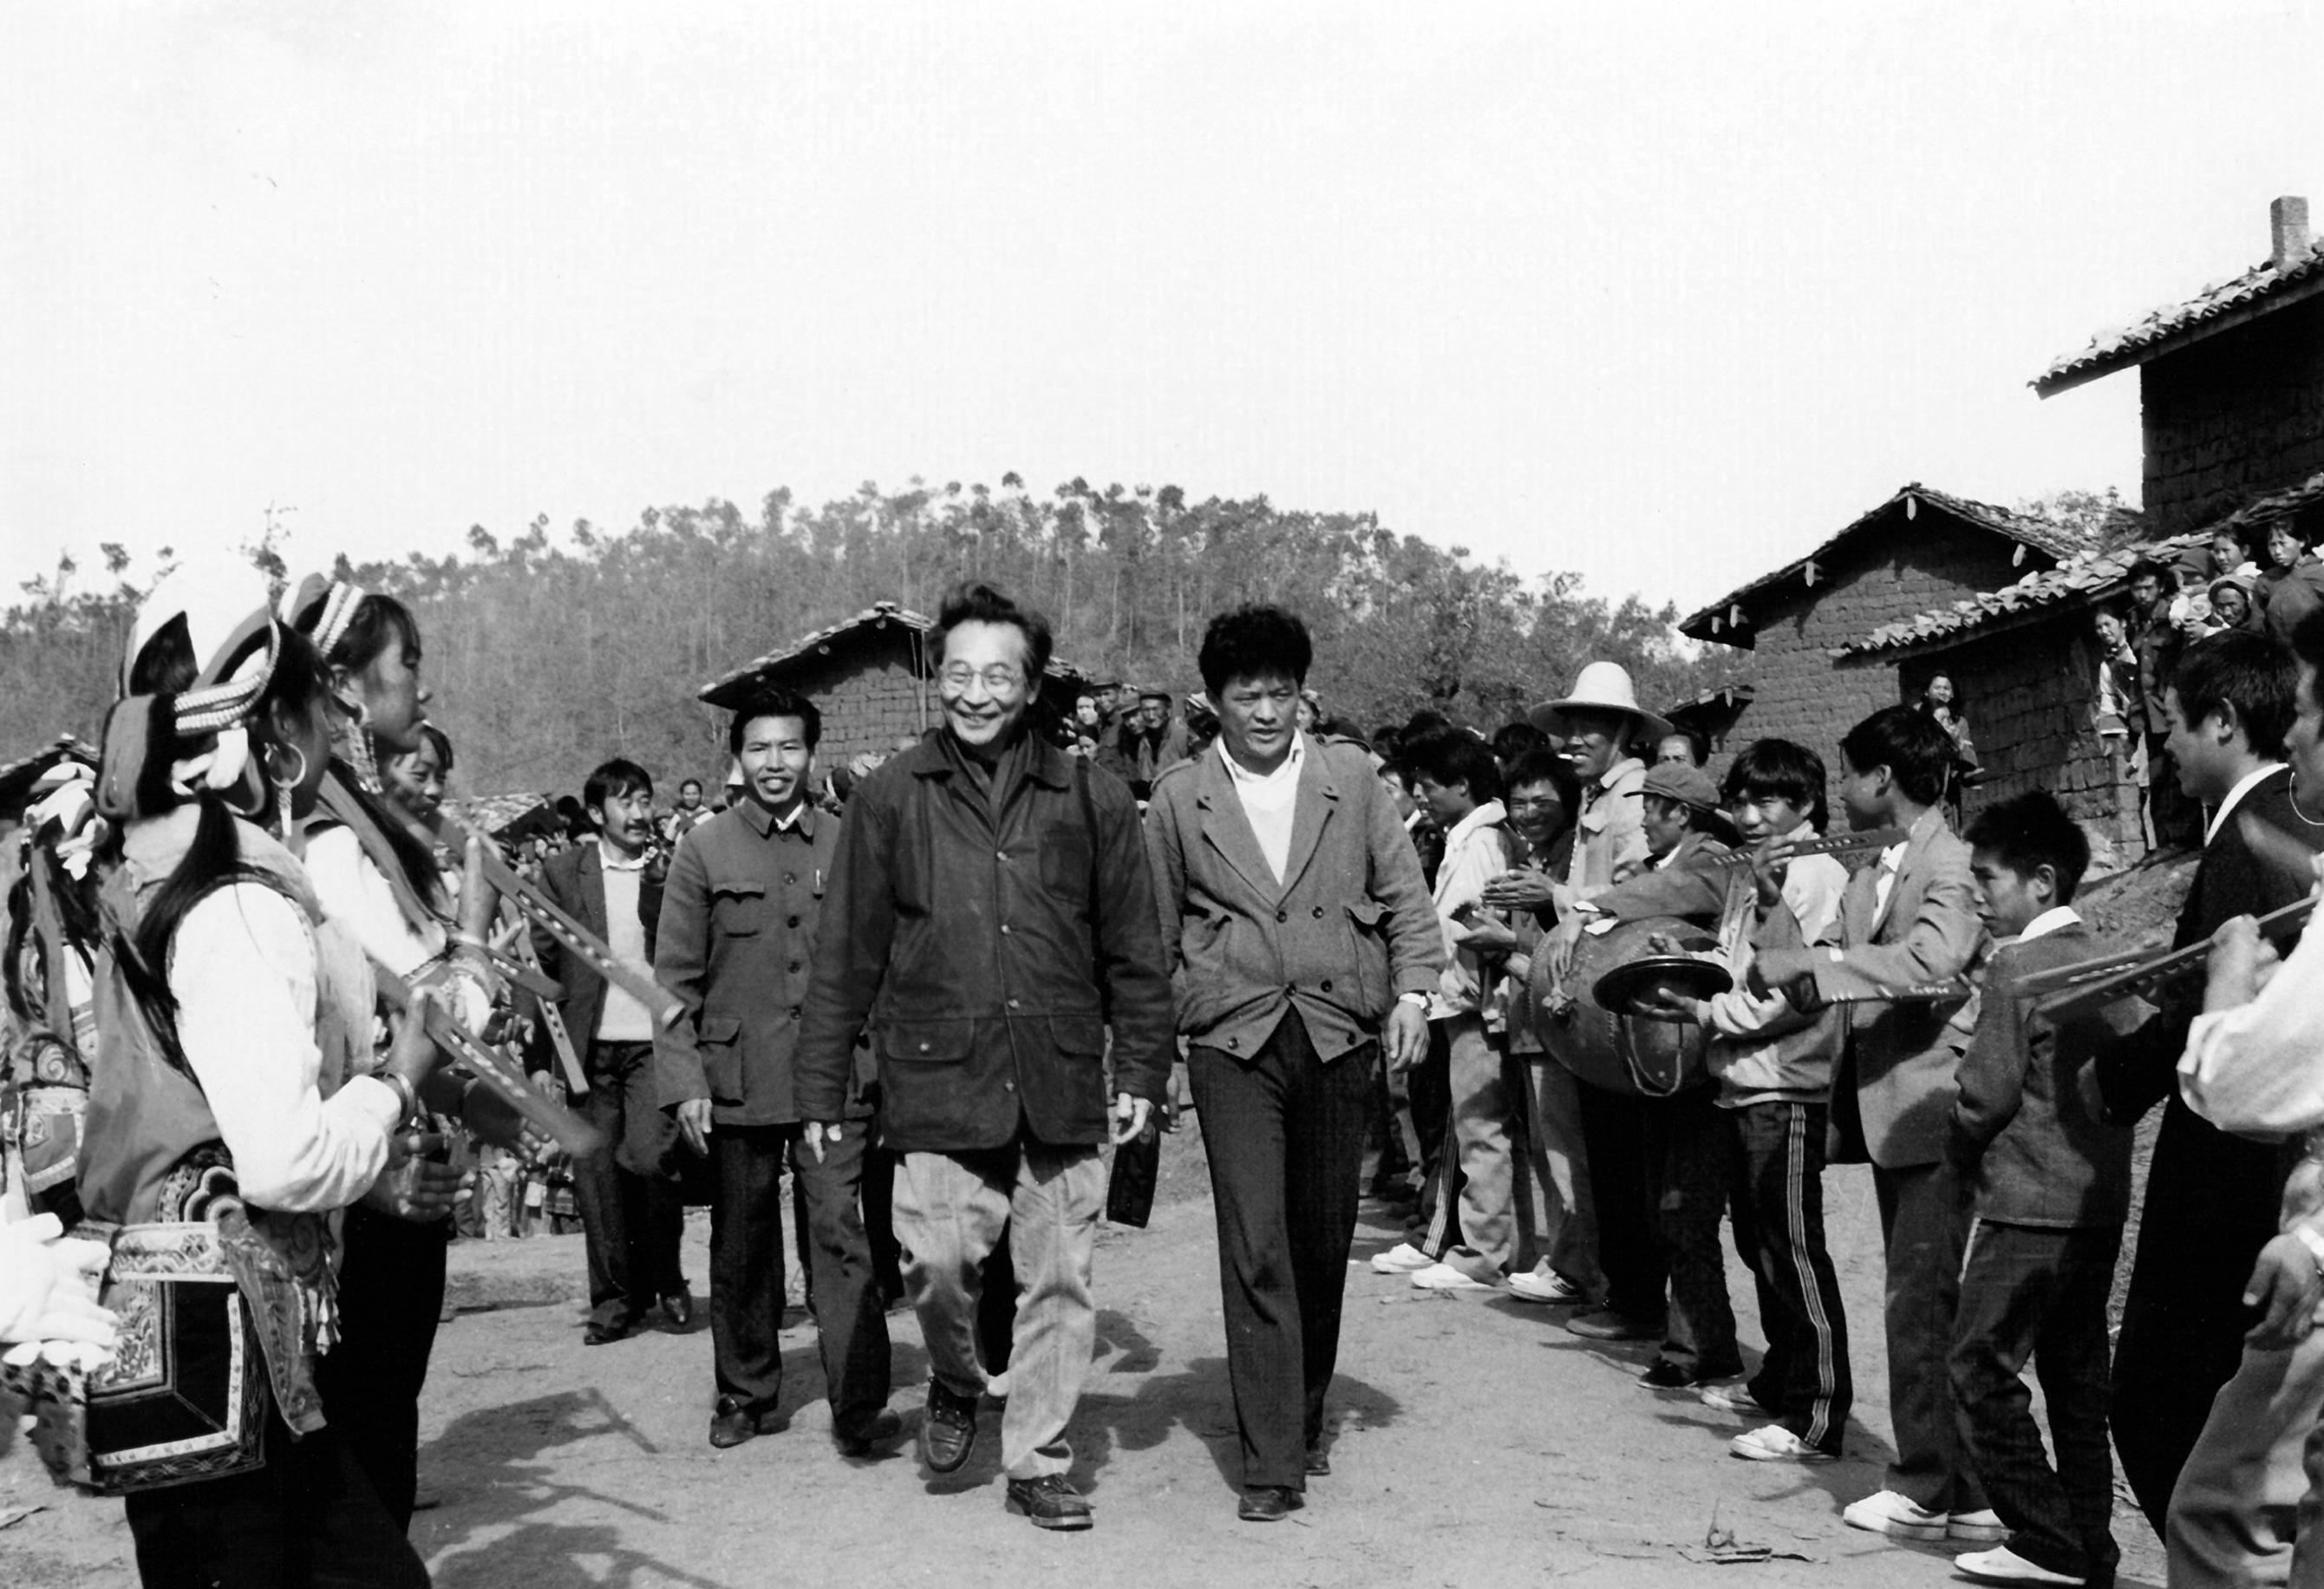 Chou Wen-chung greets Wujiepu Village residents in Luxi County during his December 1990 research trip to Yunnan Province